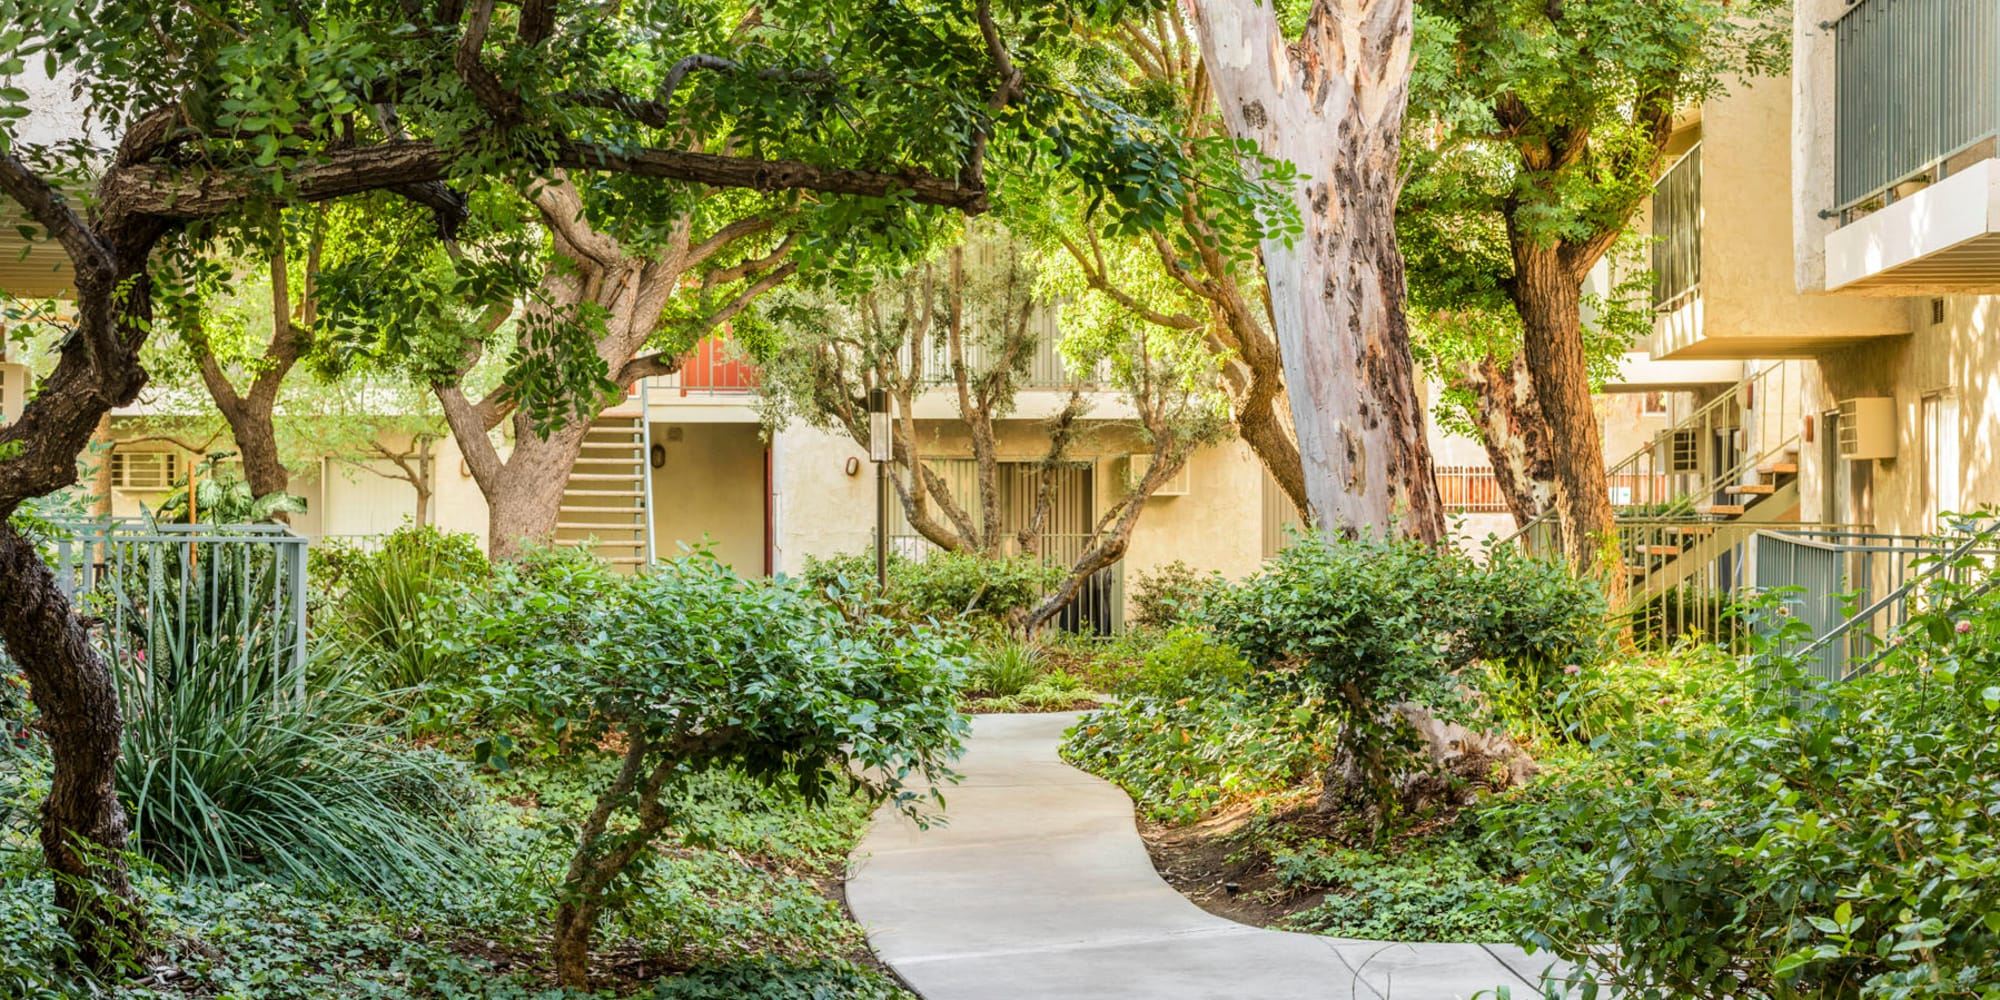 Mature trees and tropical landscaping throughout the community at Village Pointe in Northridge, California